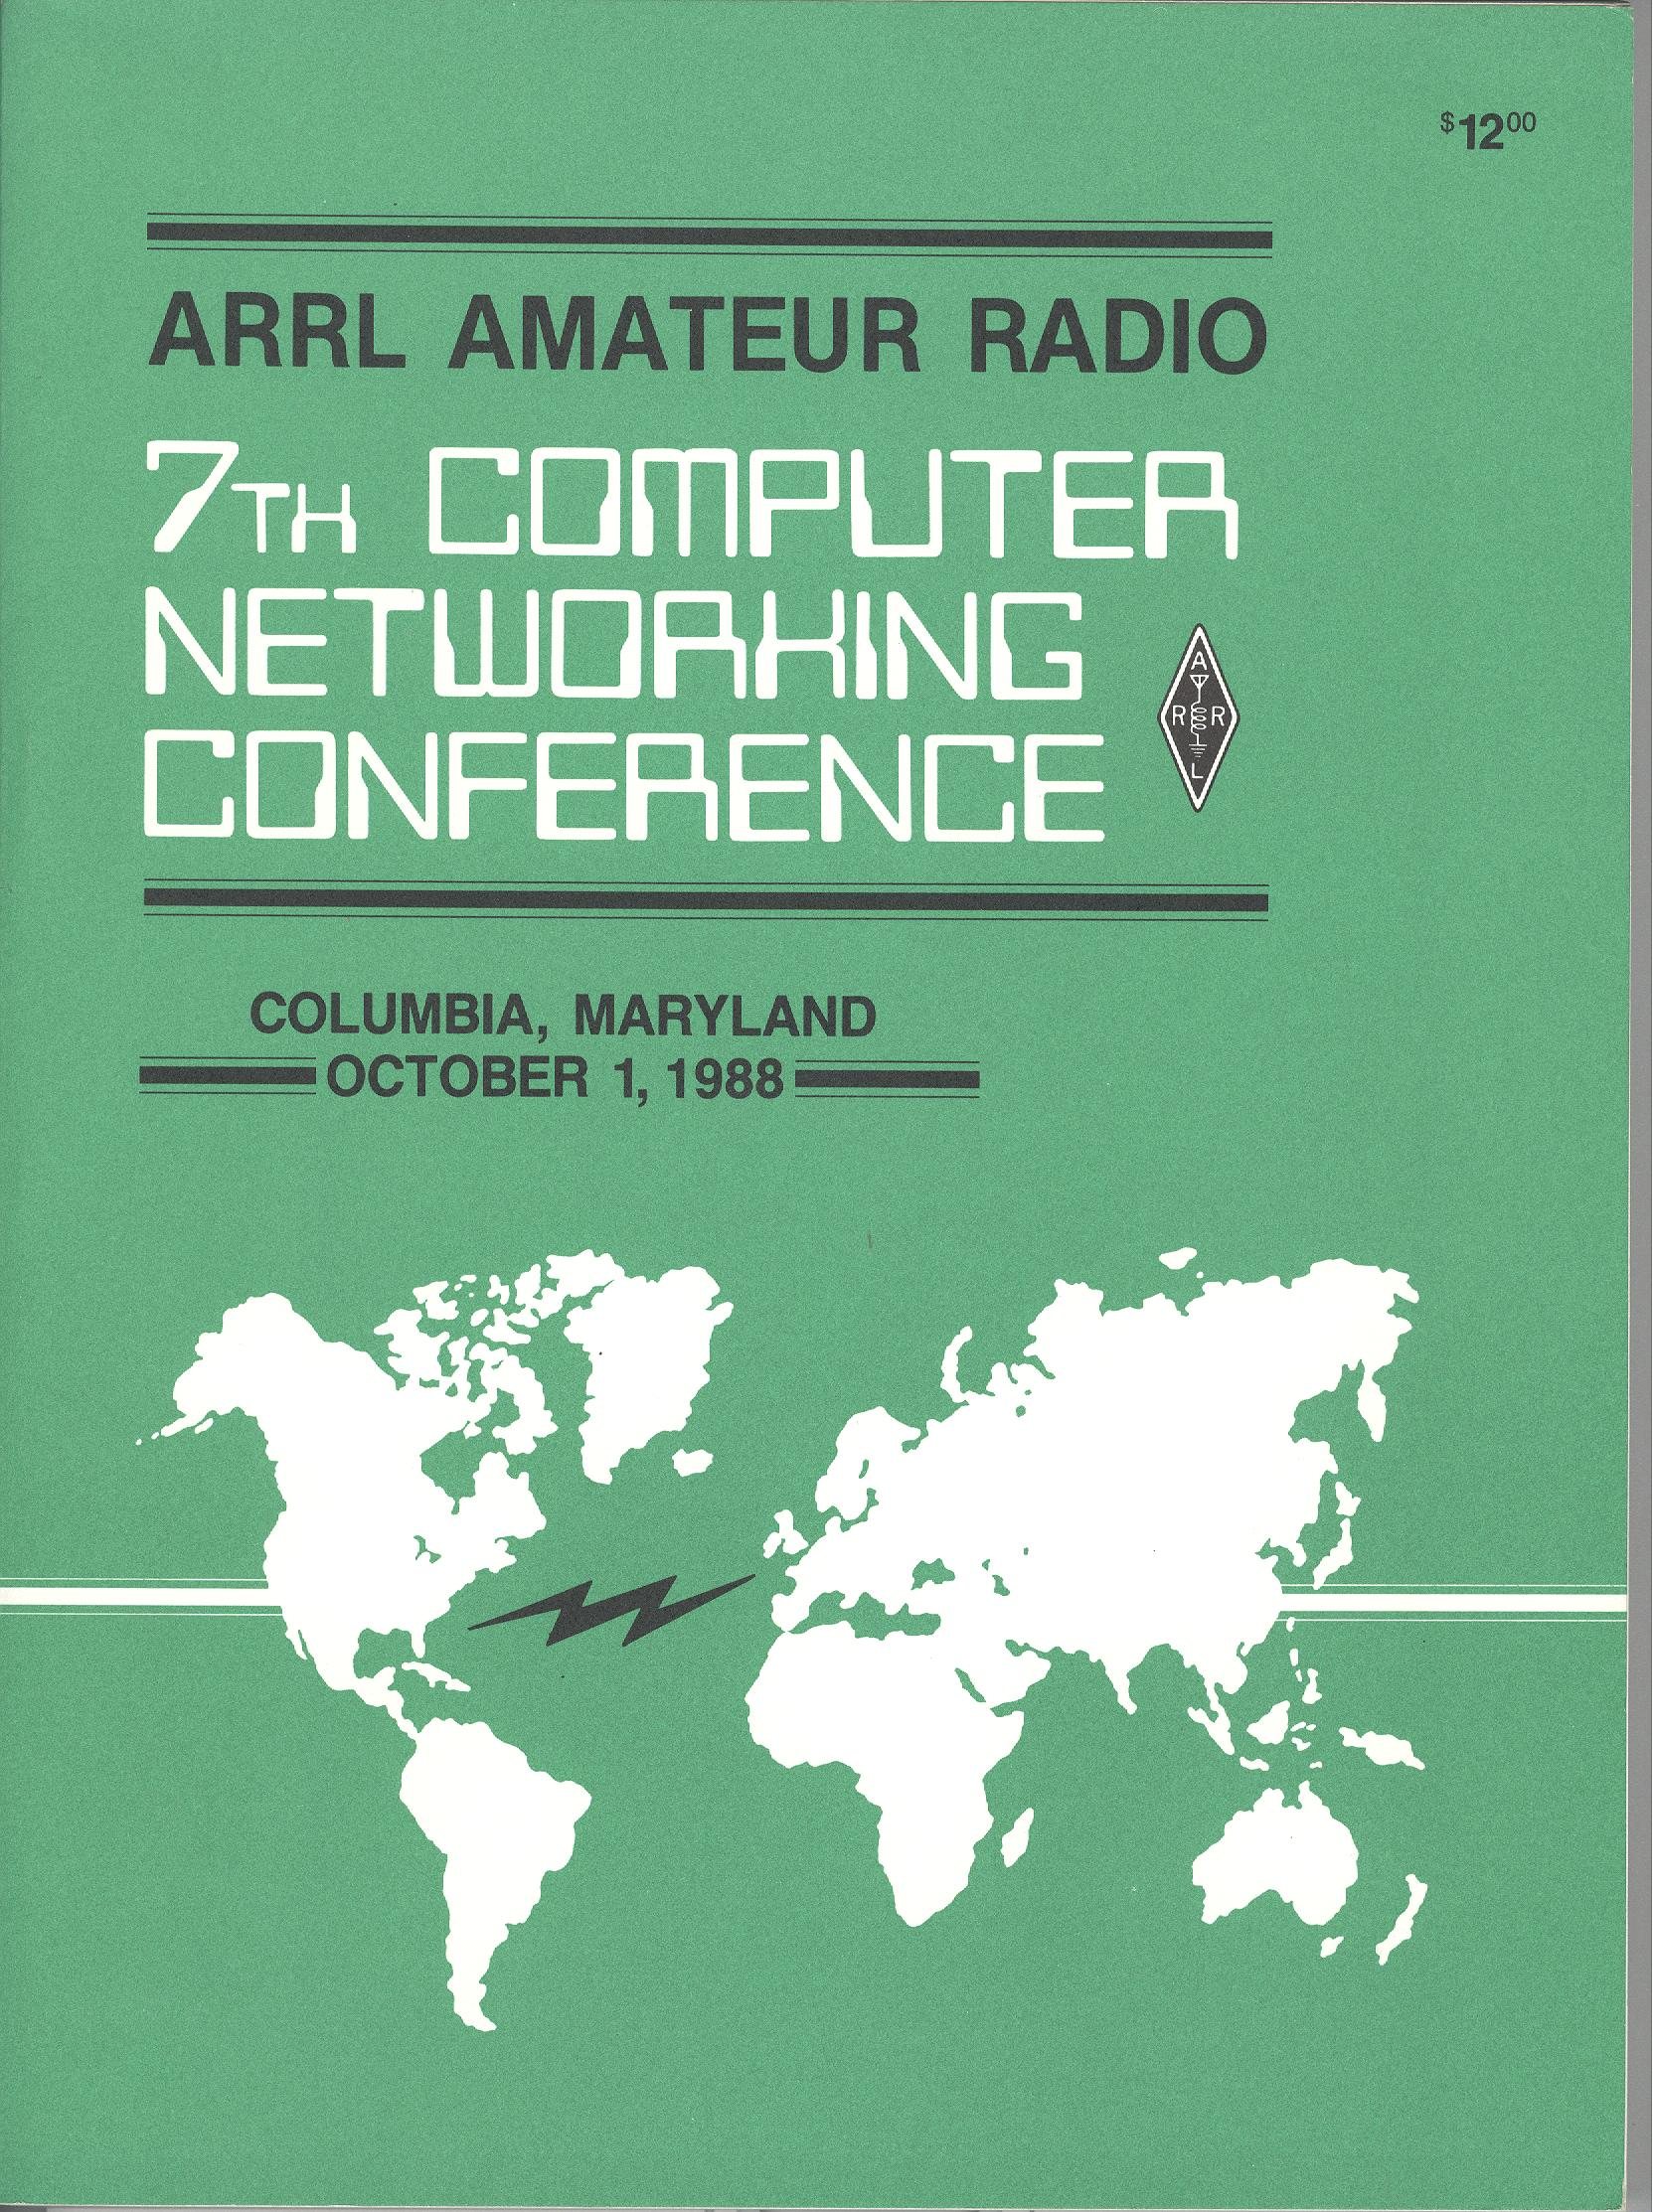 ARRL Amateur Radio 7th Computer Networking Conference